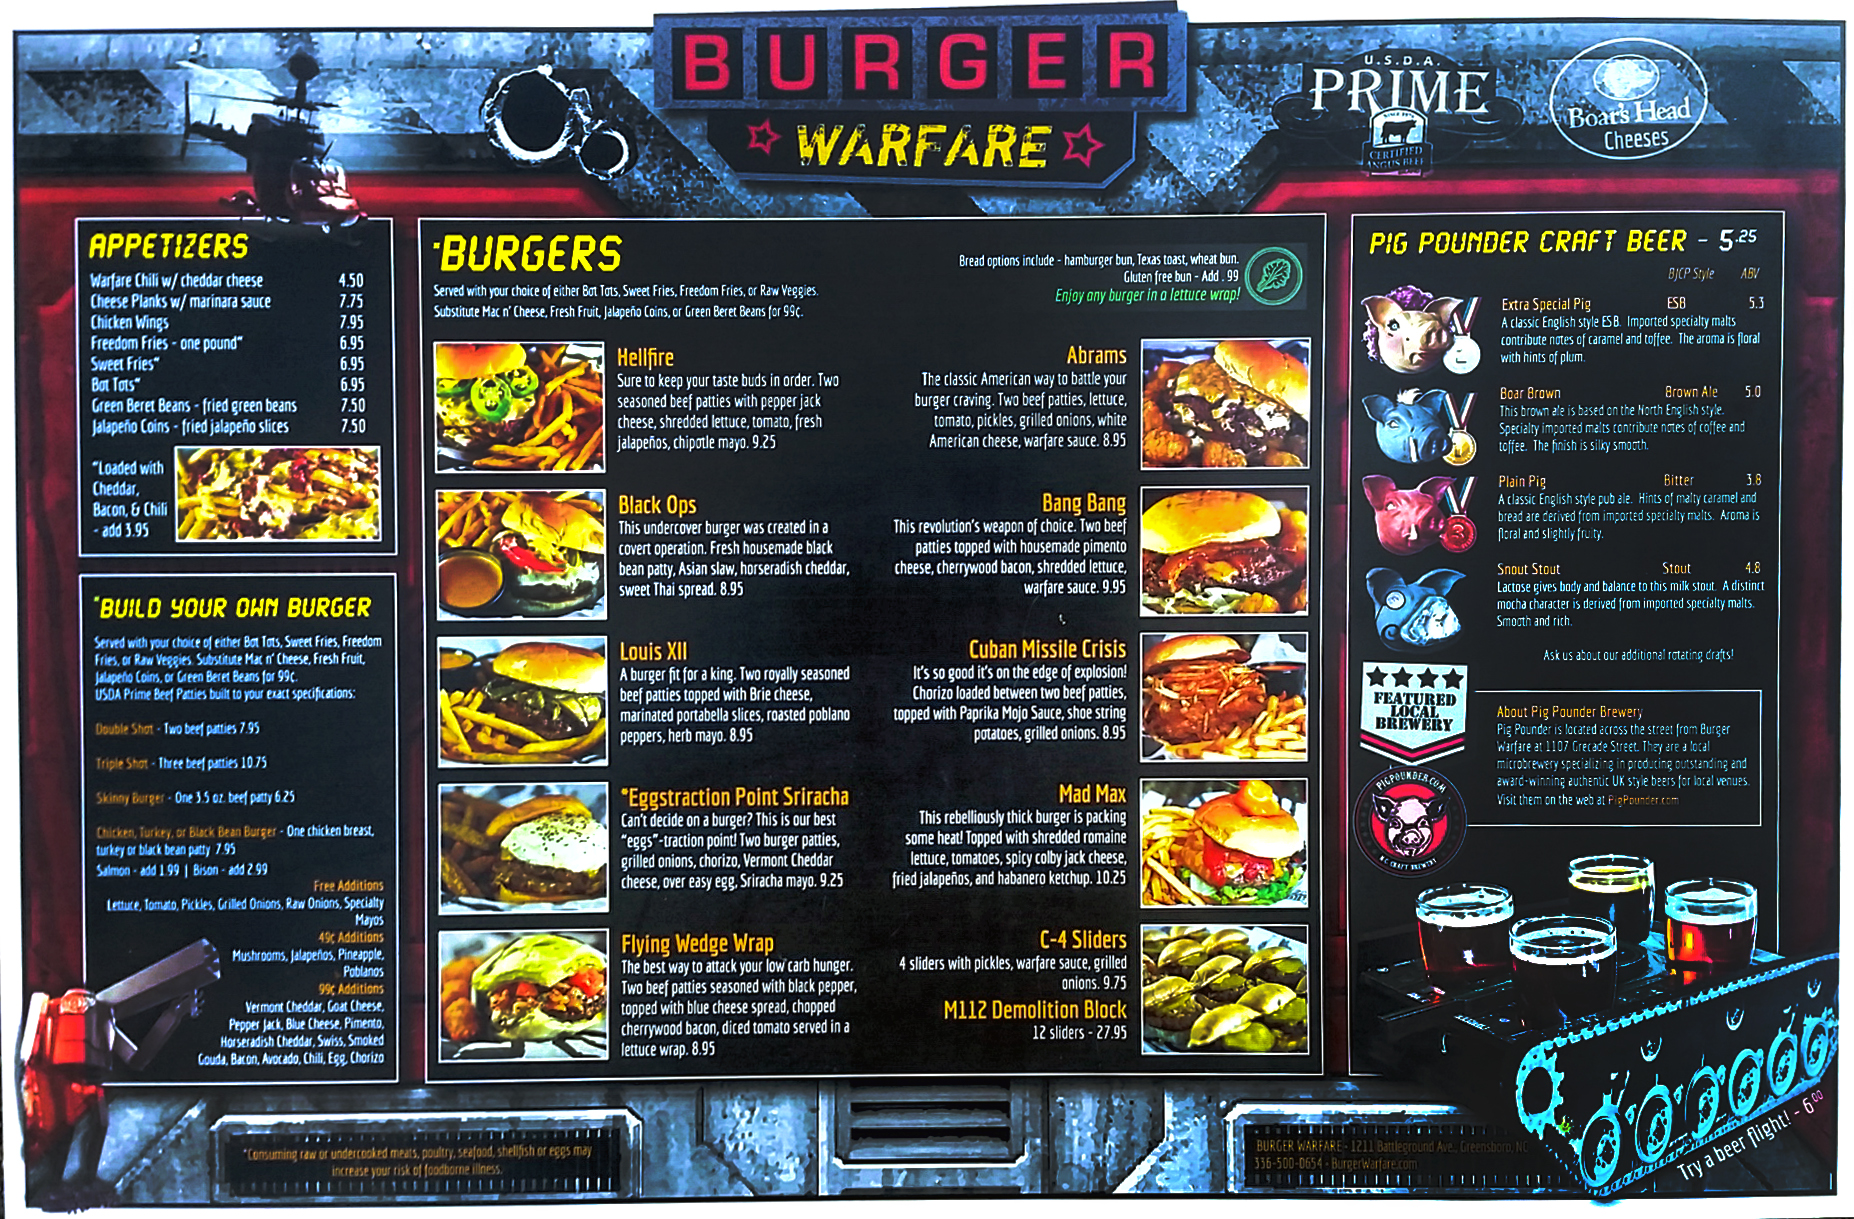 Burger Warfare menu